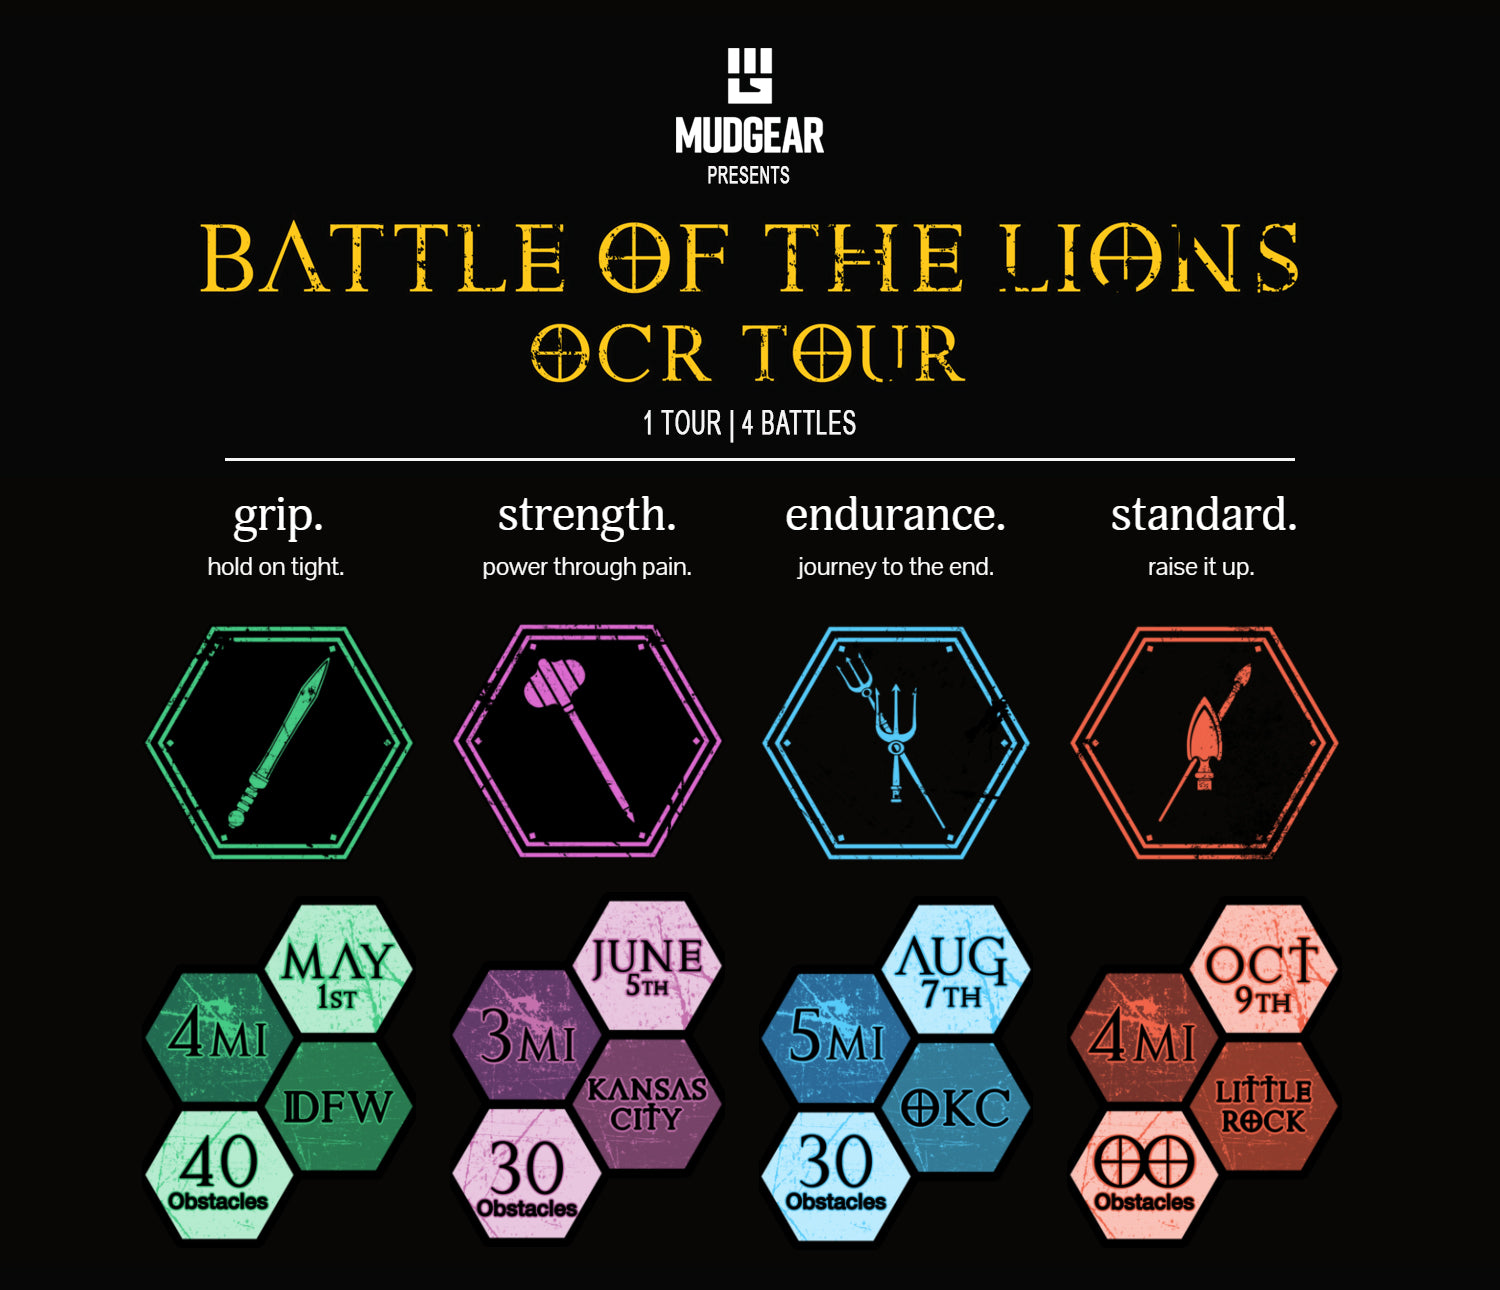 Battle of the Lions